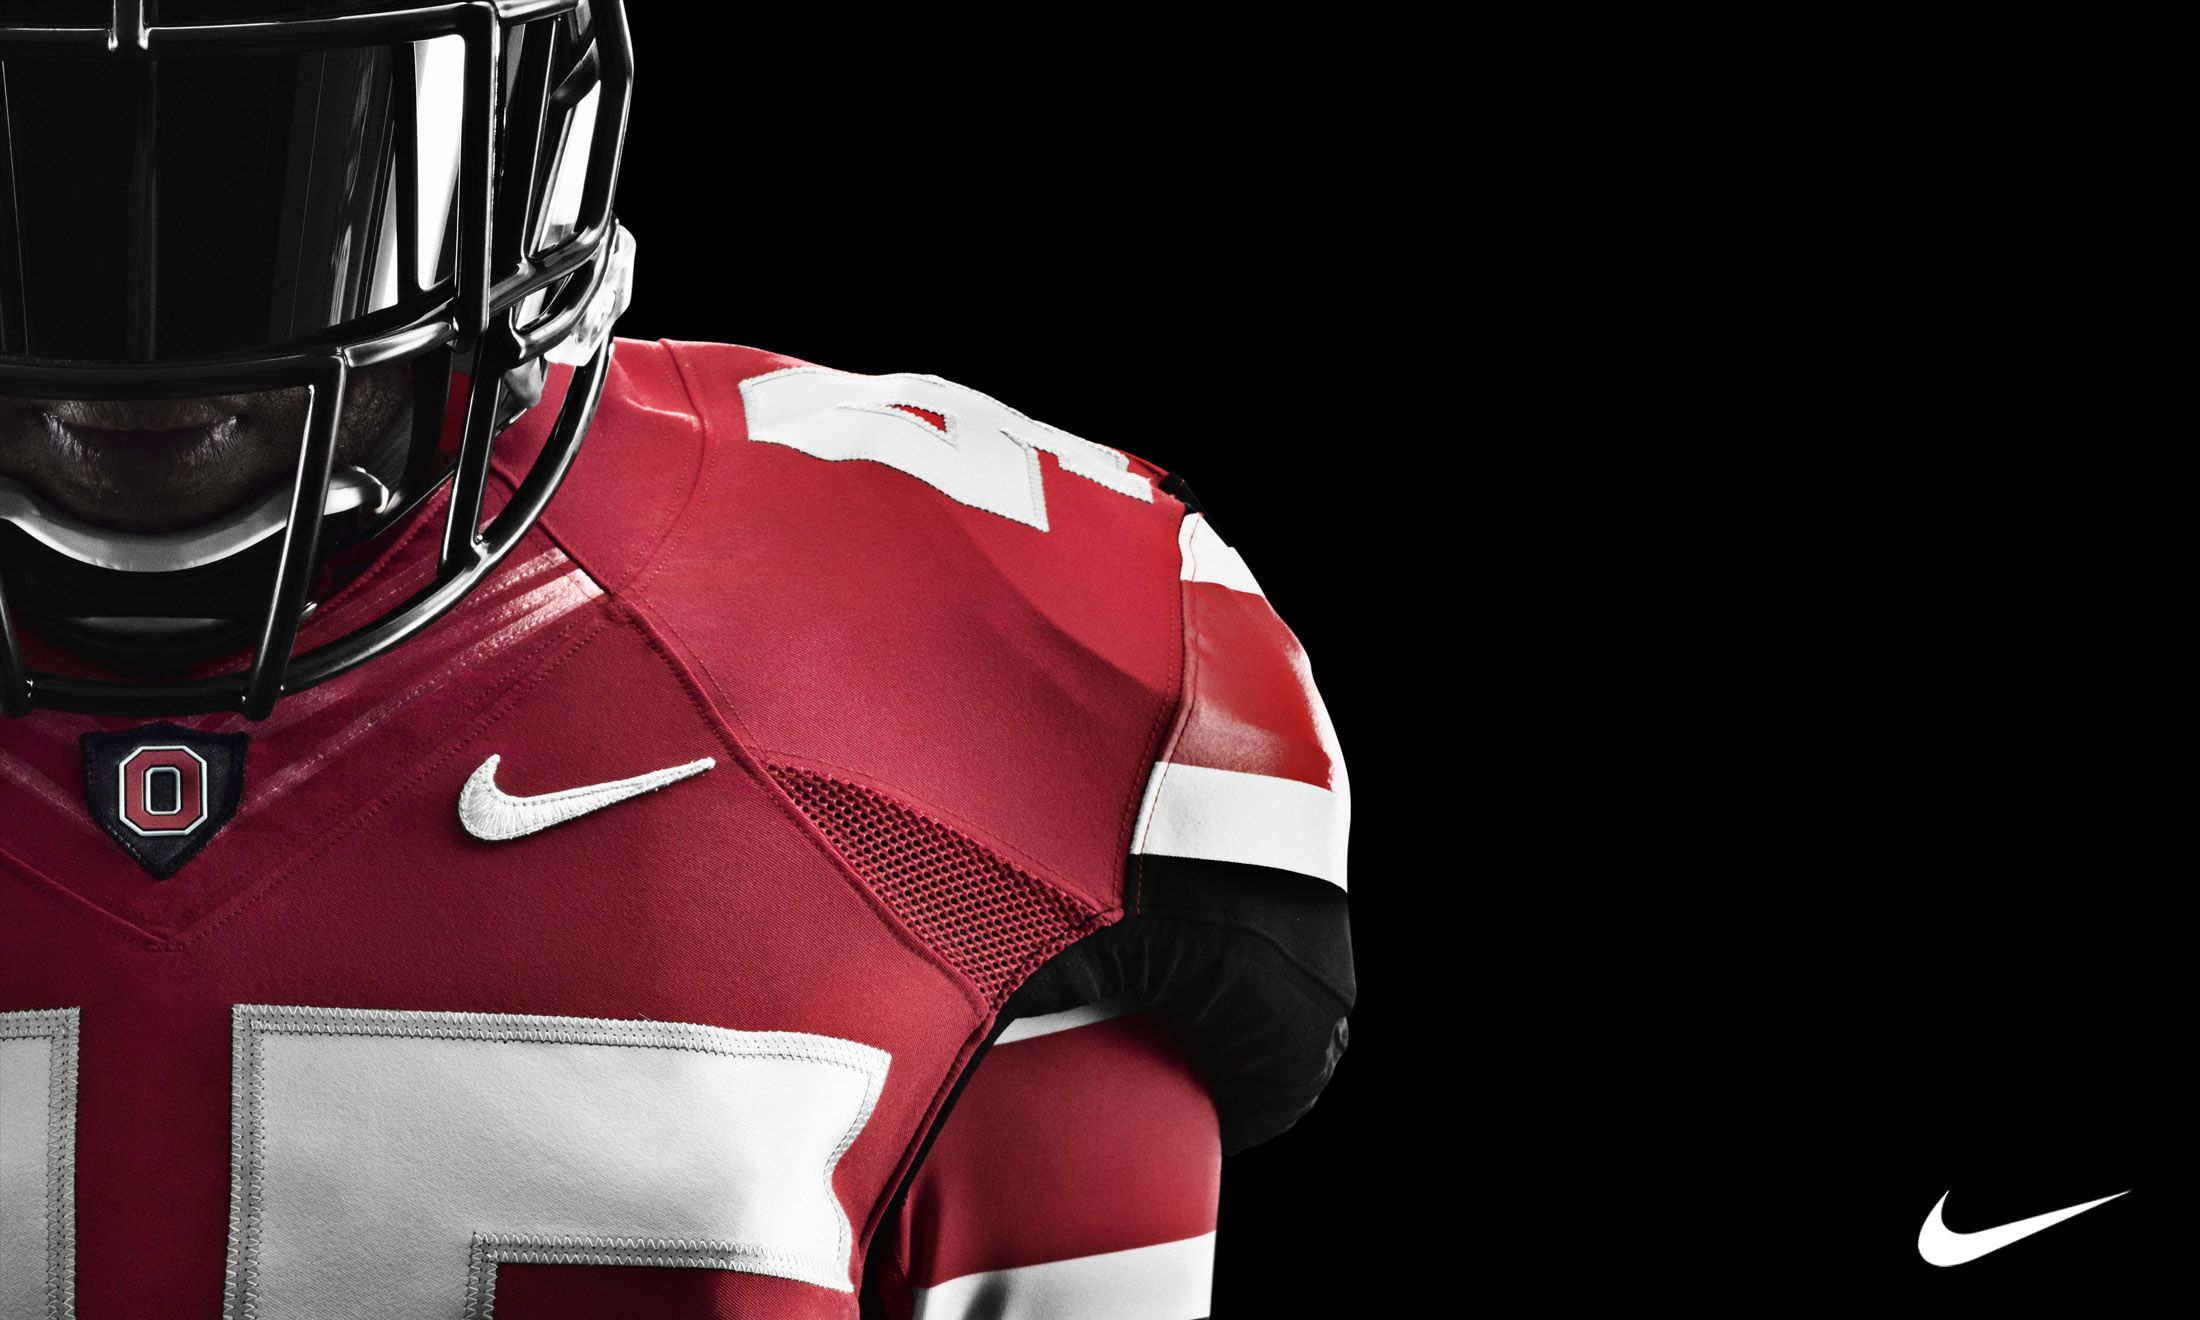 American Football Wallpapers For Facebook Full Hd Pictures 1920 1080 American Football Wallpaper 55 Wallpapers Nike Wallpaper Ohio State Wallpaper Ohio State